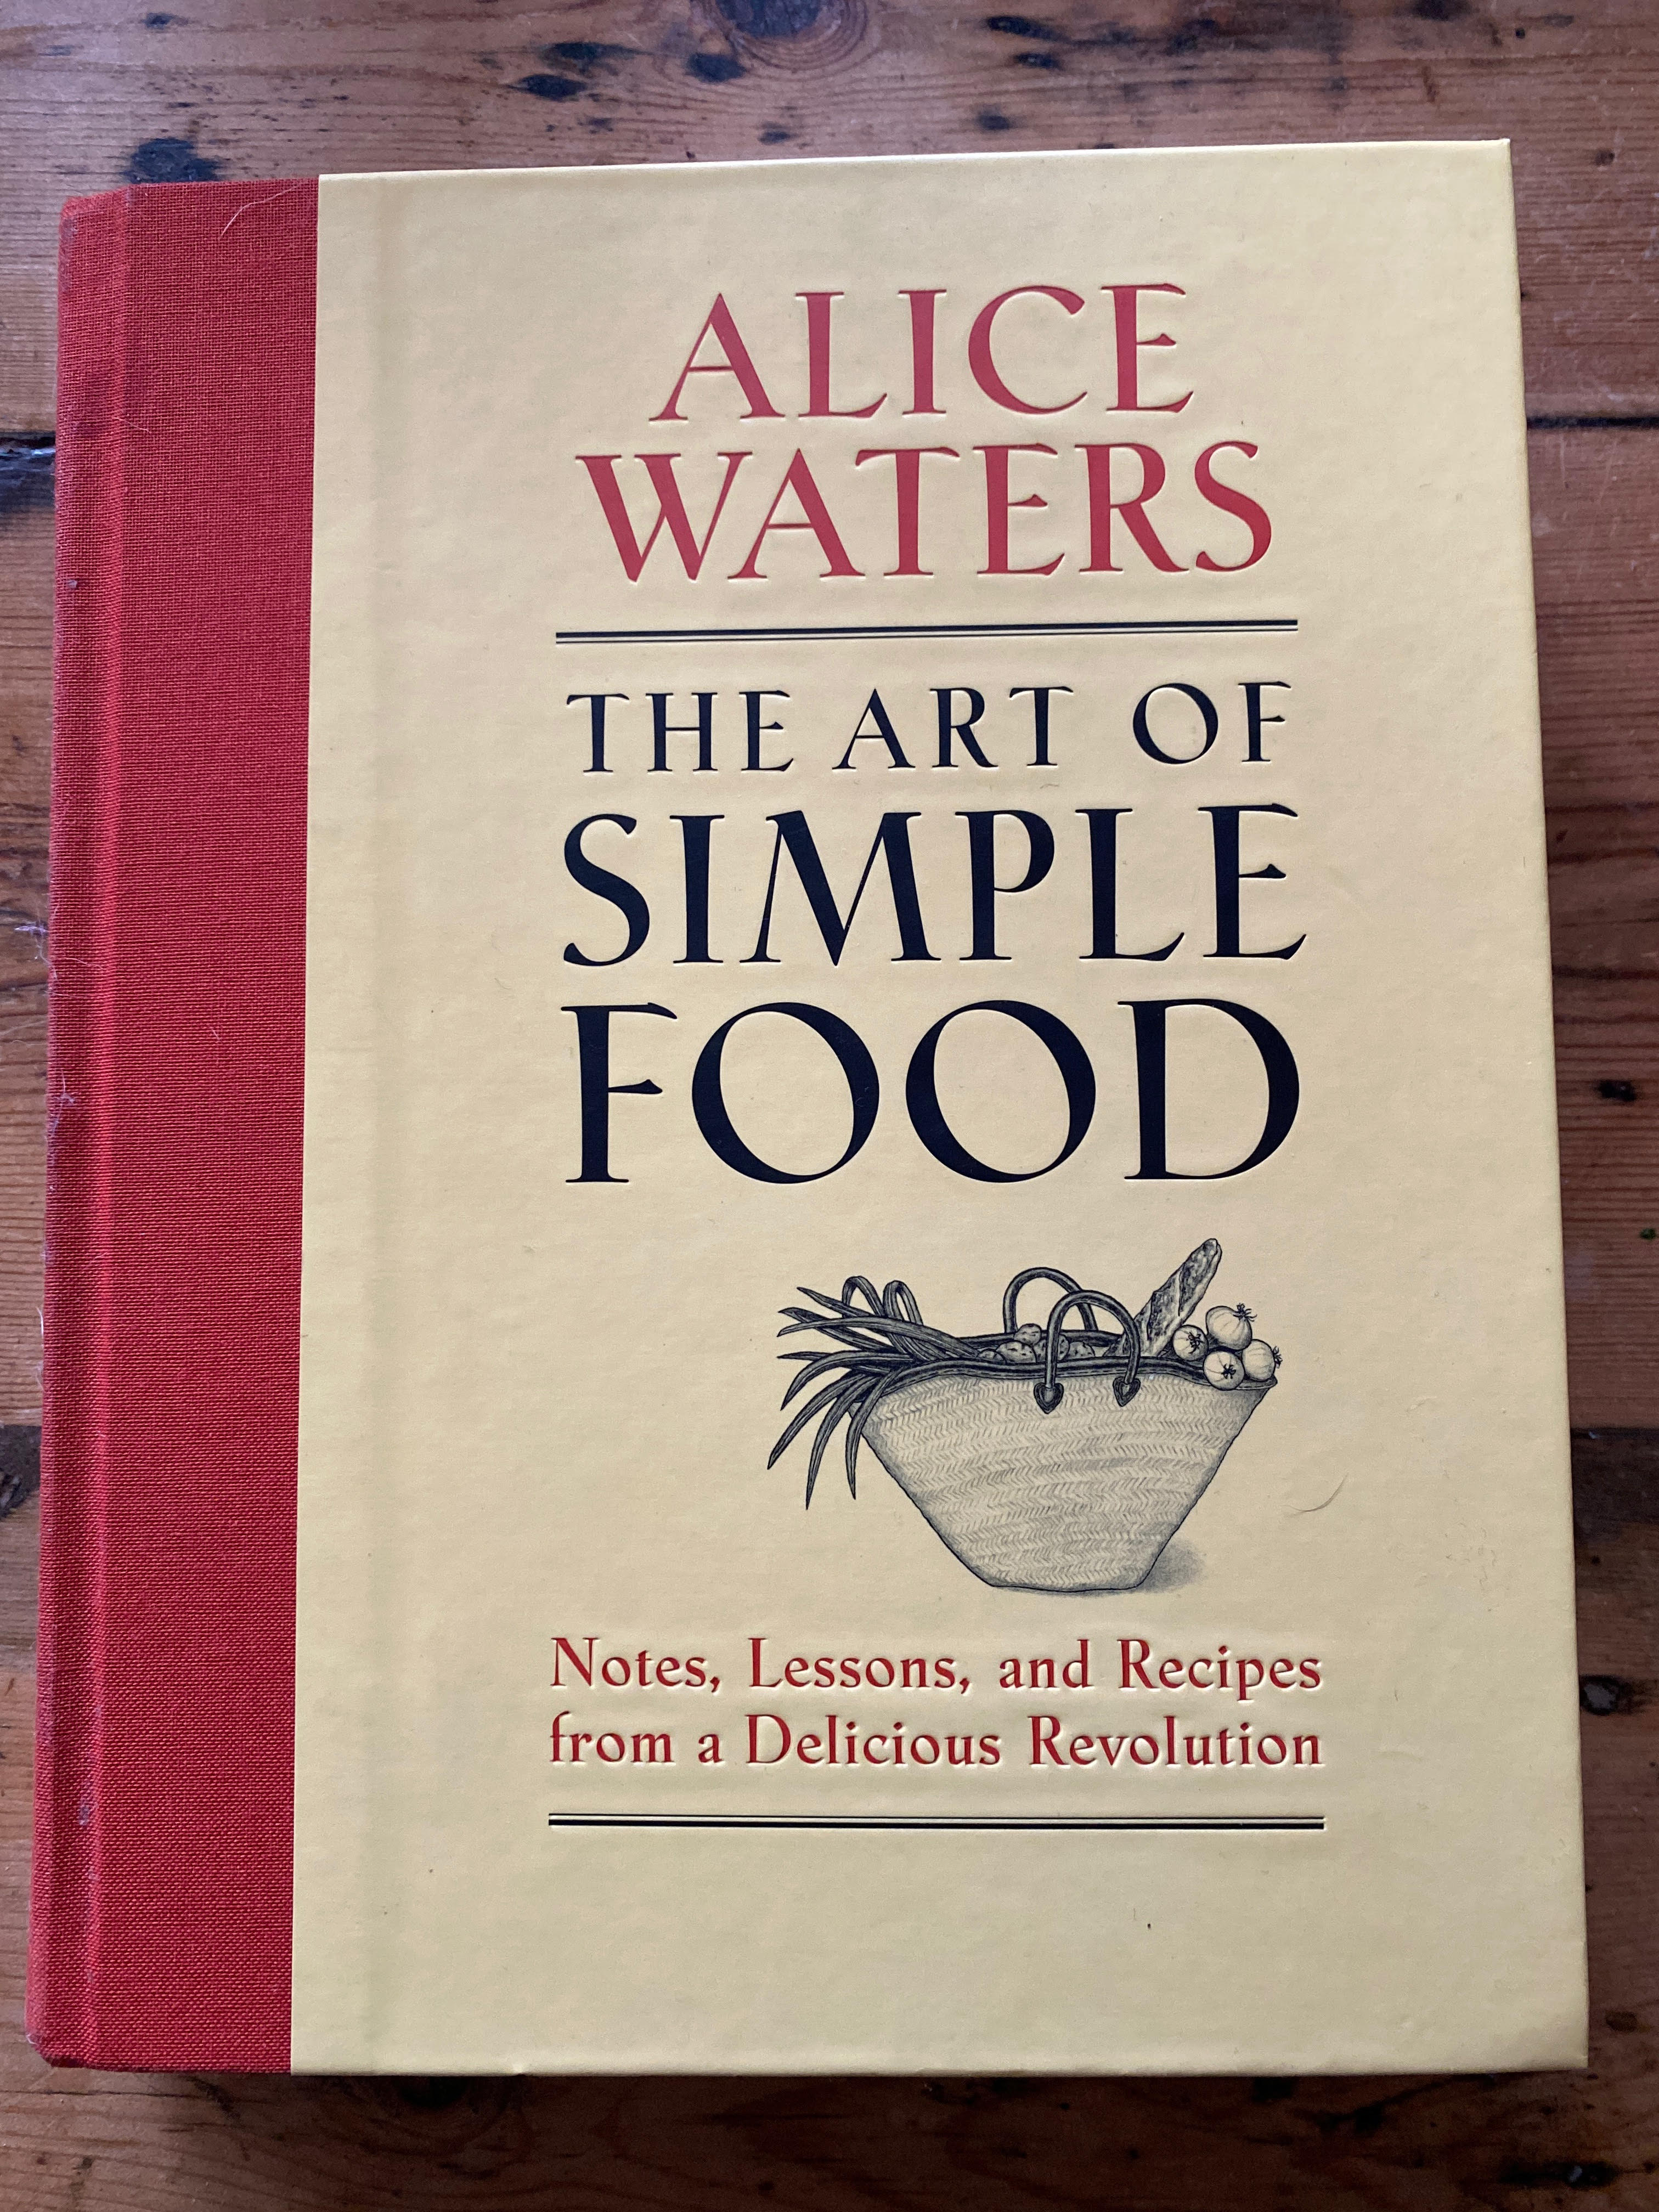 I Love Alice Waters